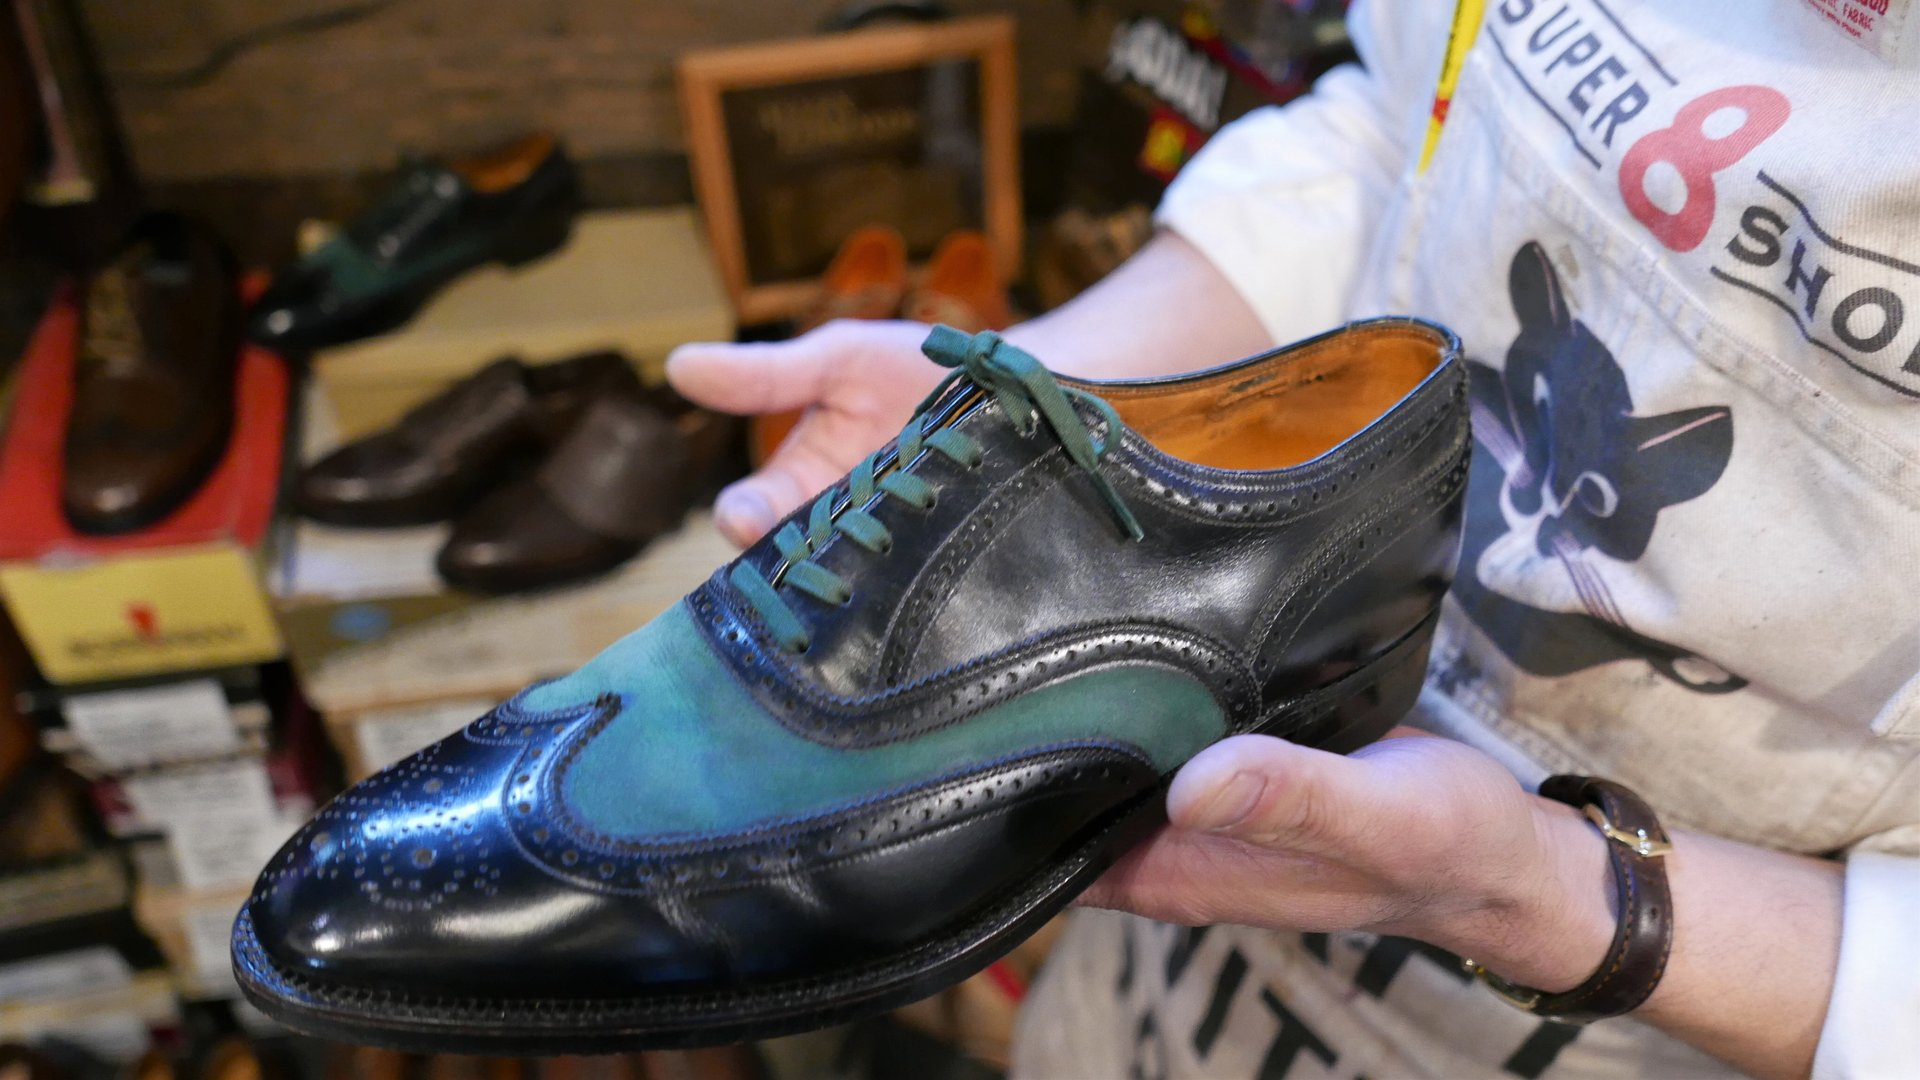 Repaired vintage shoes